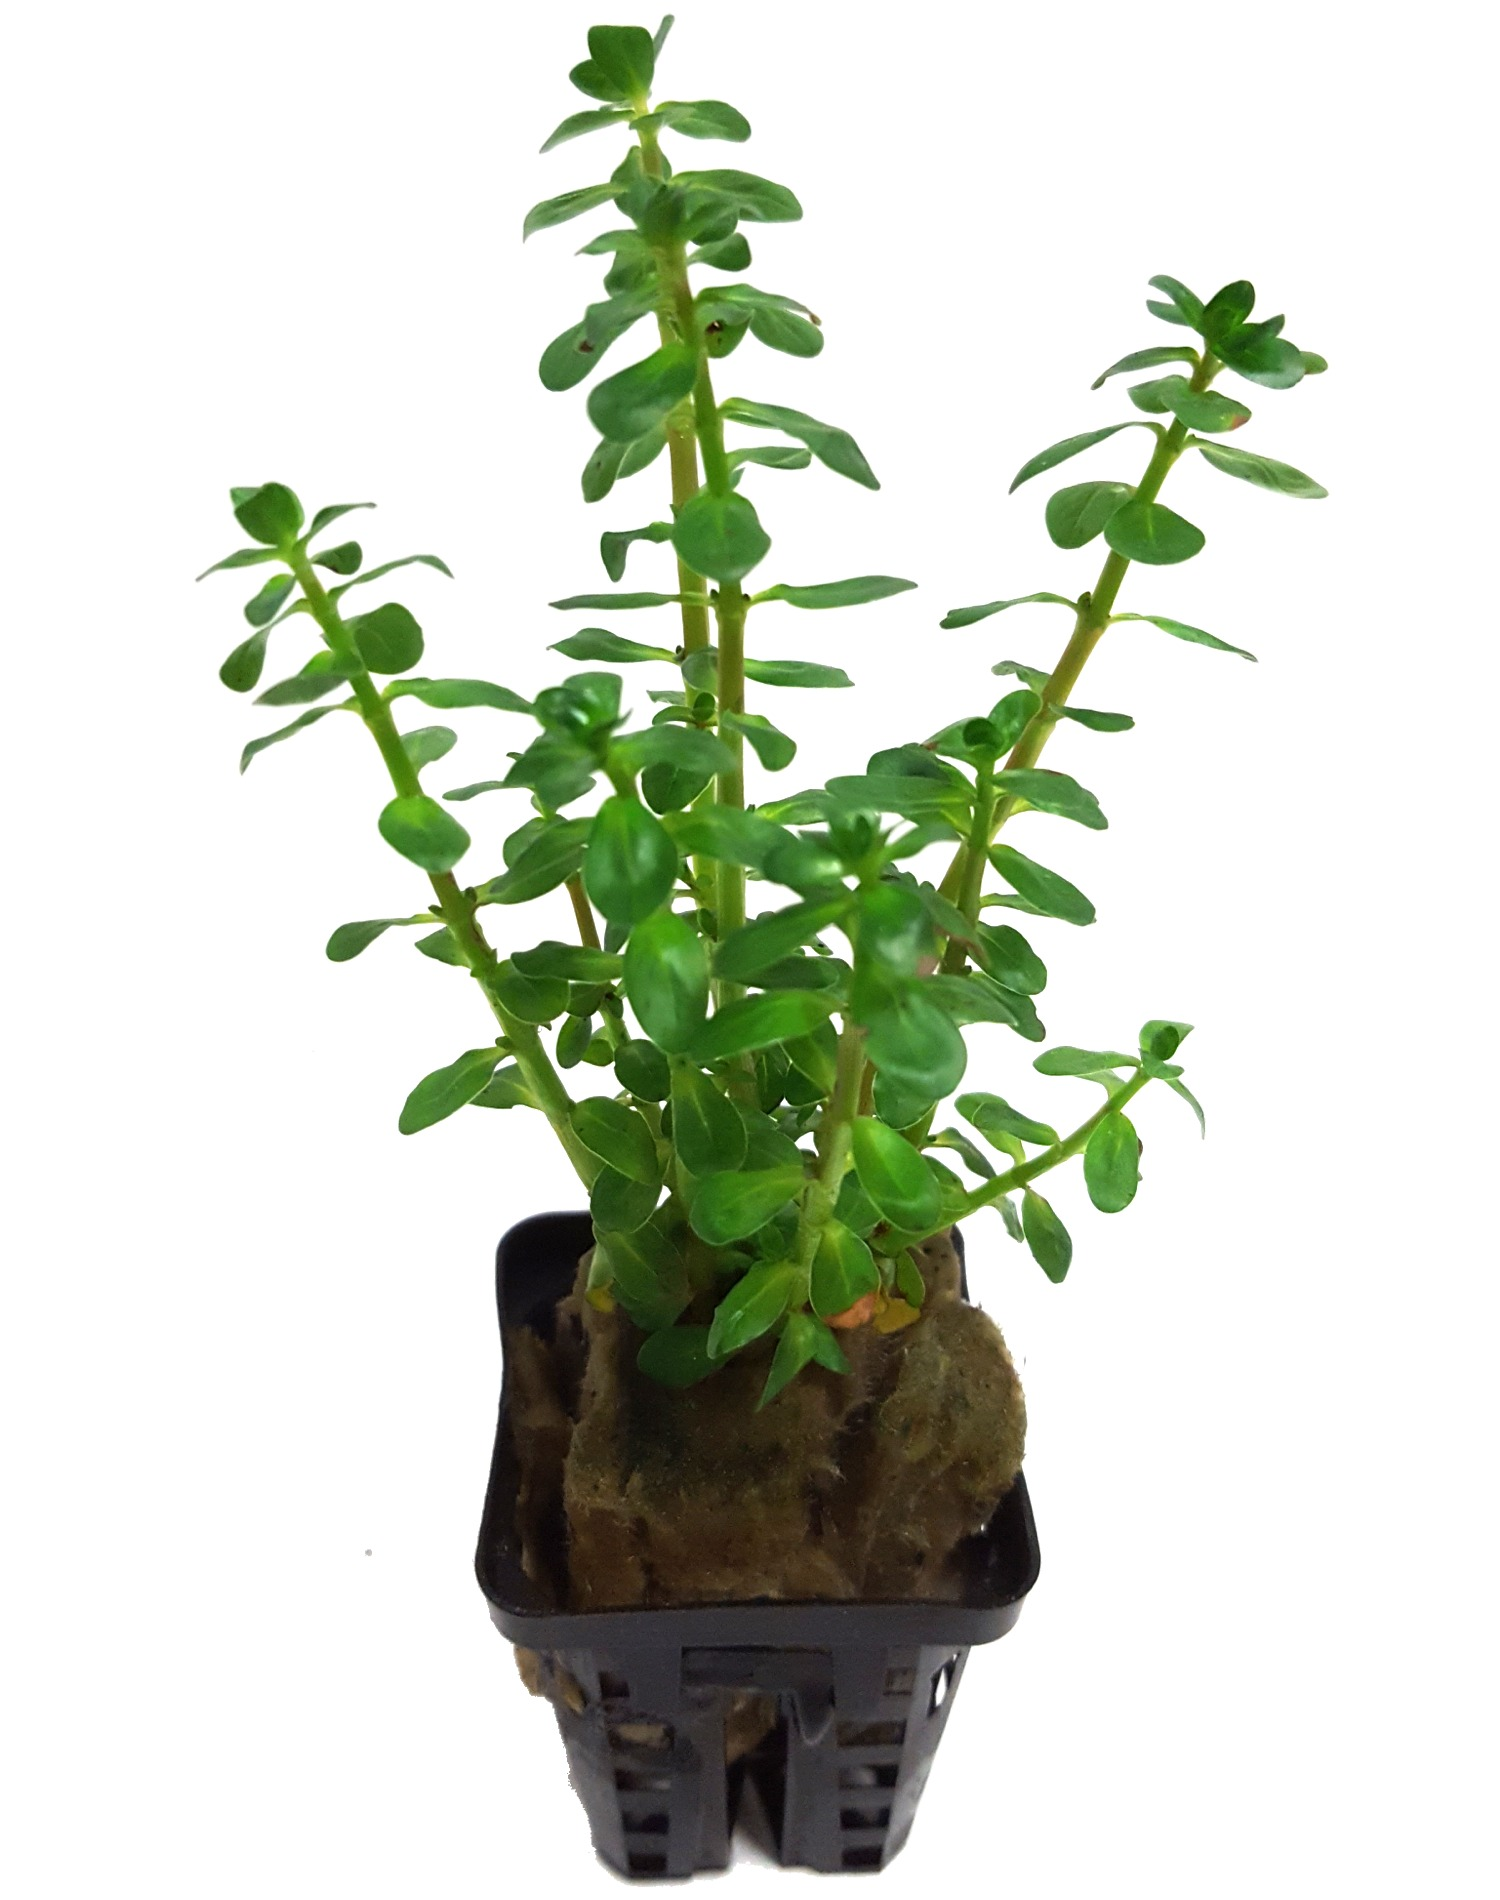 Ammania gracilis Bonsaï plante d\'aquarium en pot de diamètre 5 cm